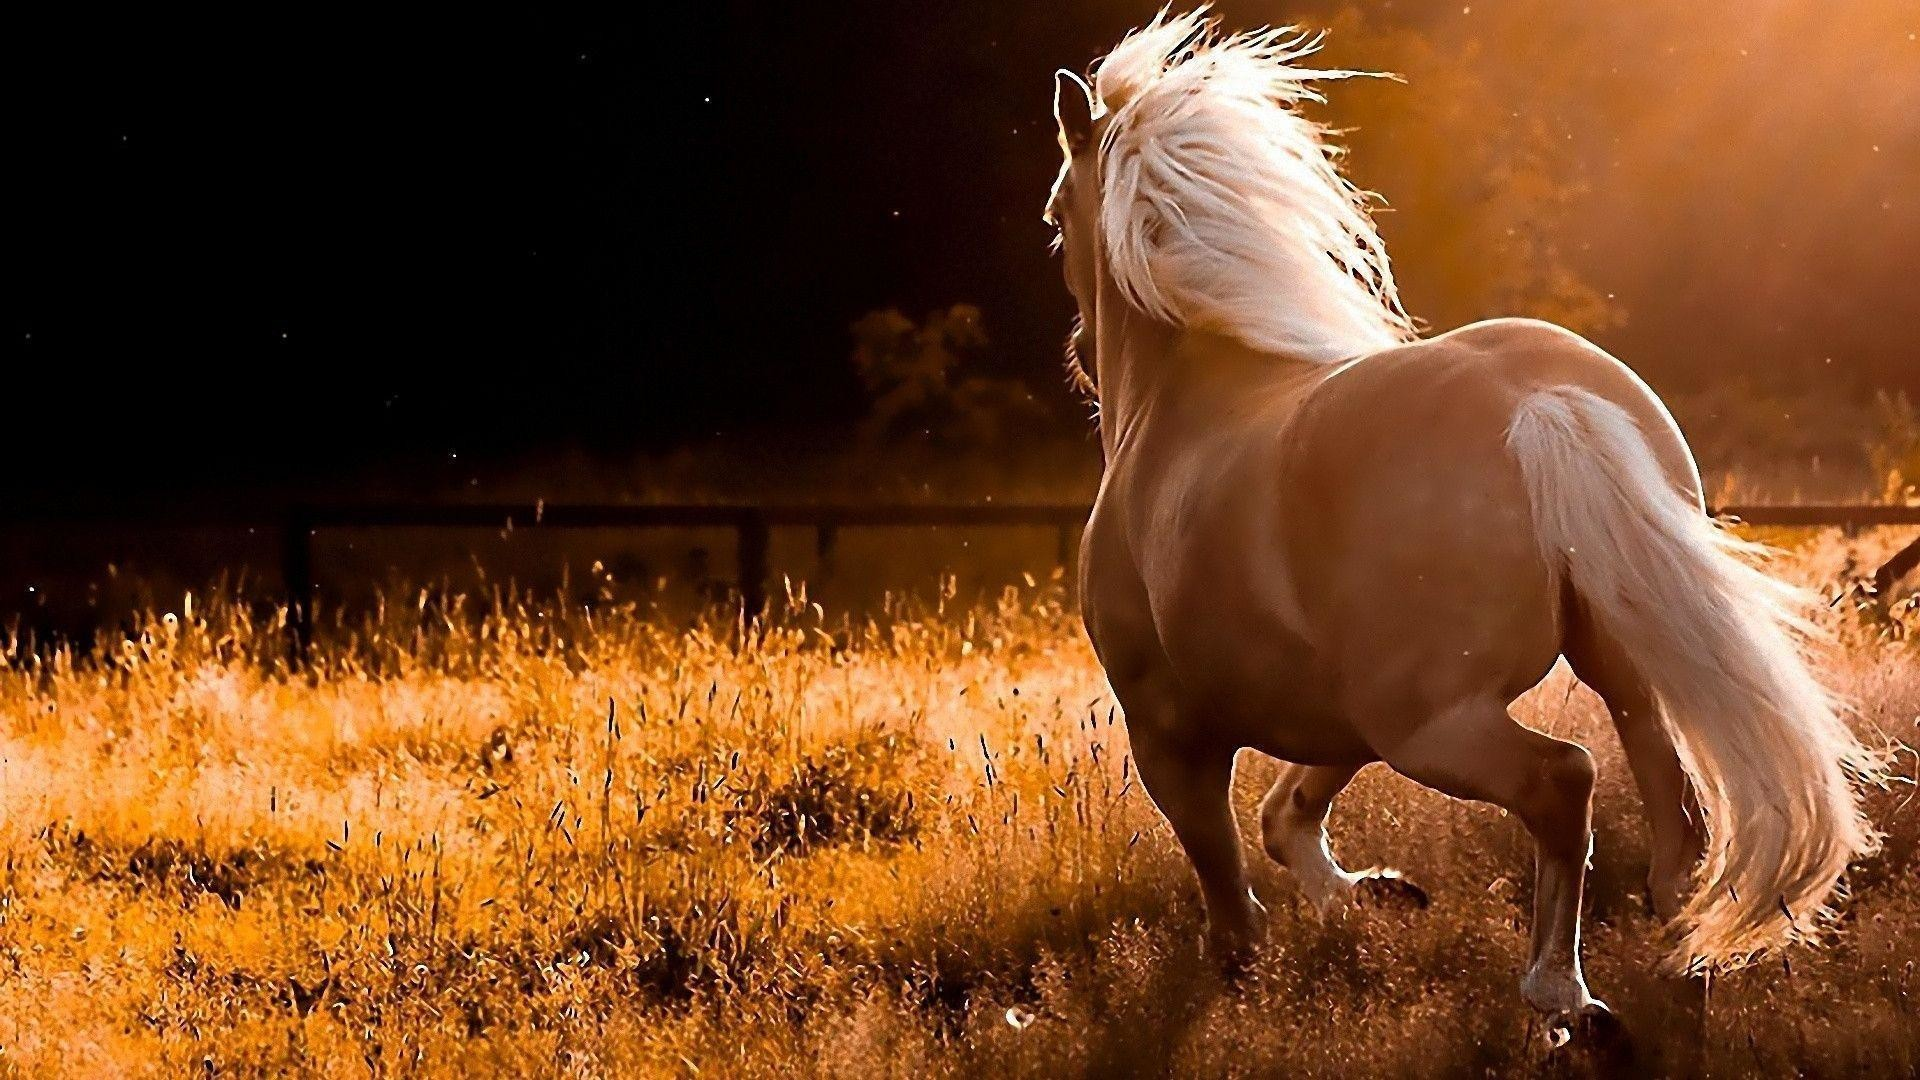 Fall horse wallpaper 42 images 1920x1080 white running horse wallpaper download hd wallpapers voltagebd Image collections